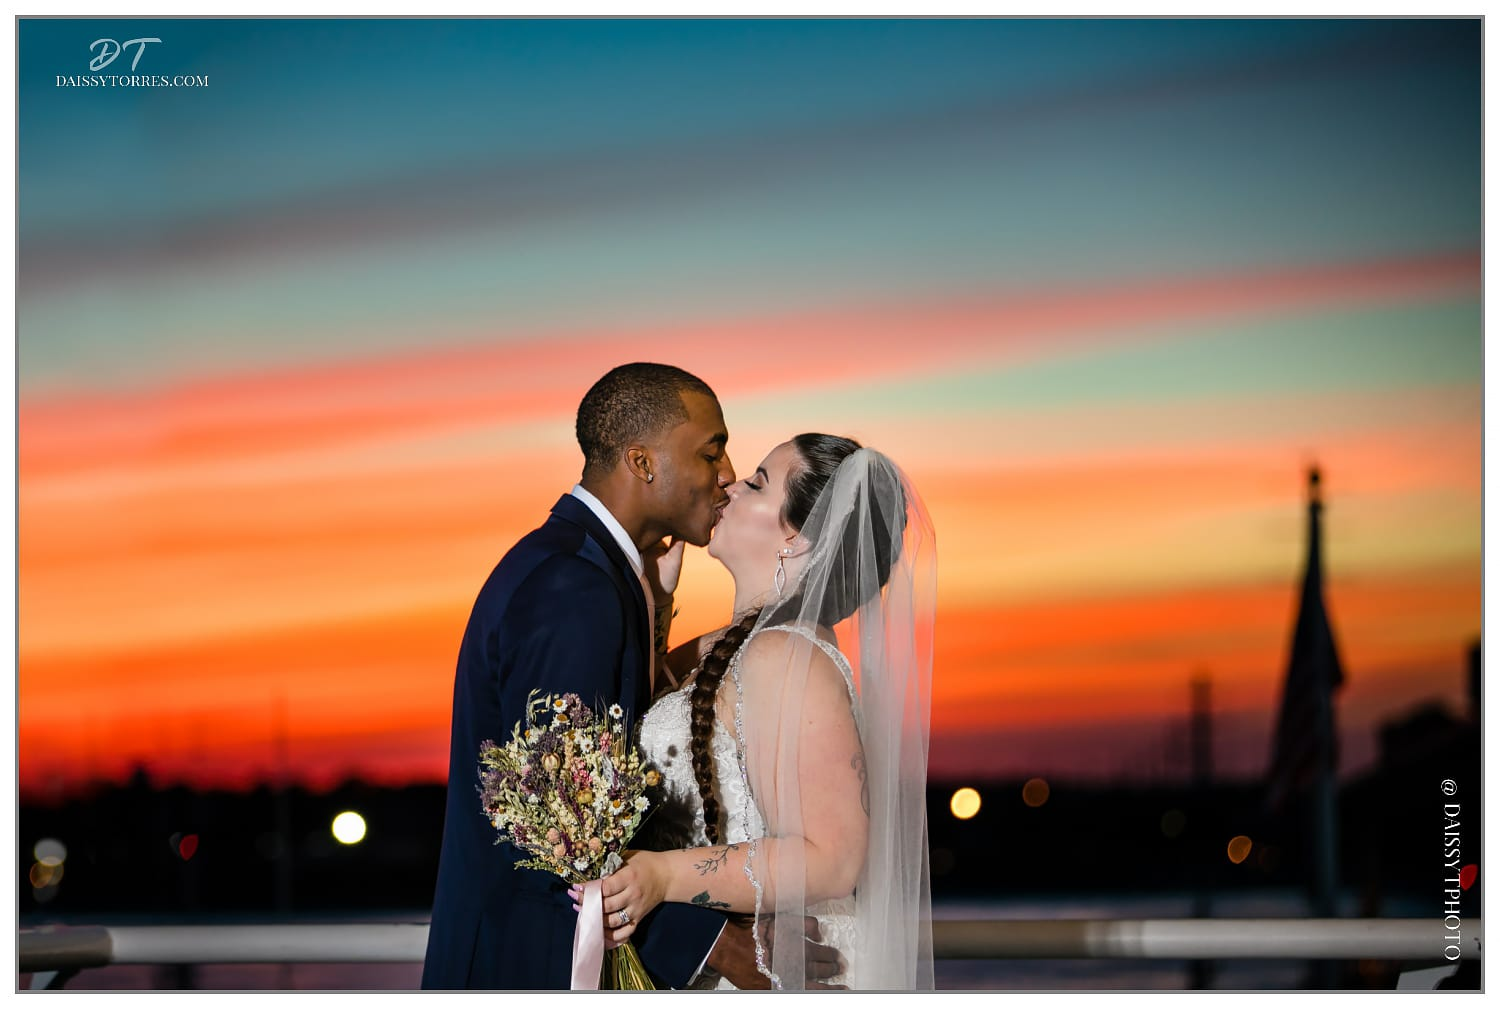 Courtney & Anthony - Lesner Inn Sunset Wedding